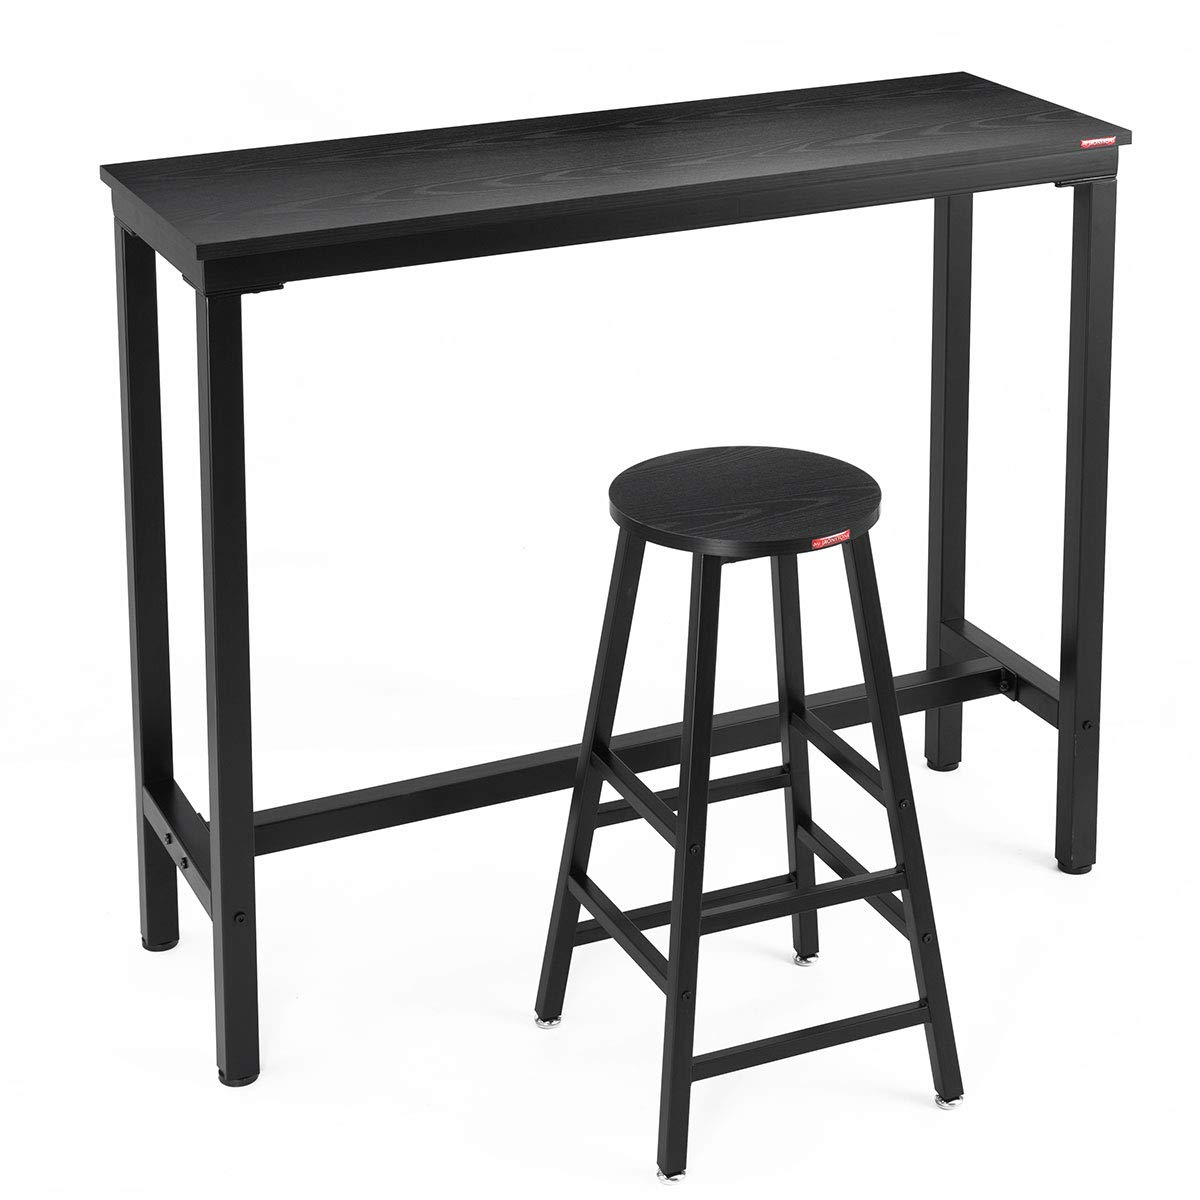 Mr IRONSTONE 2-Piece Bar Table Set, 47'' Pub Dining Height Table Bistro Table with 1 Bar Stool Black Textured Top (Indoor USE ONLY) by Mr IRONSTONE